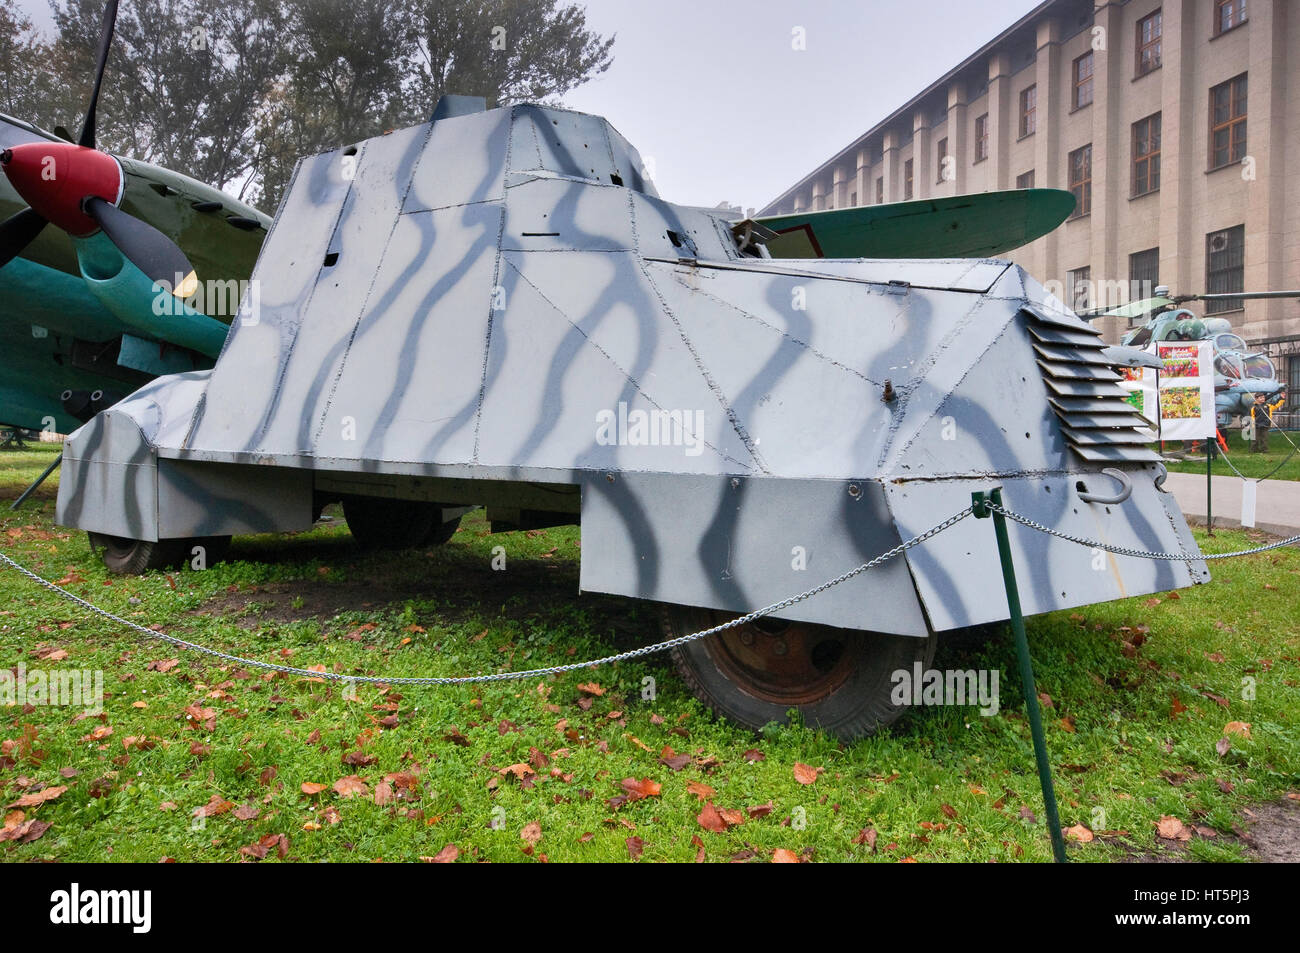 Kubus armored car, Polish WWII vehicle, used in 1944 Warsaw Uprising, Polish Army Museum in Warsaw, Poland - Stock Image